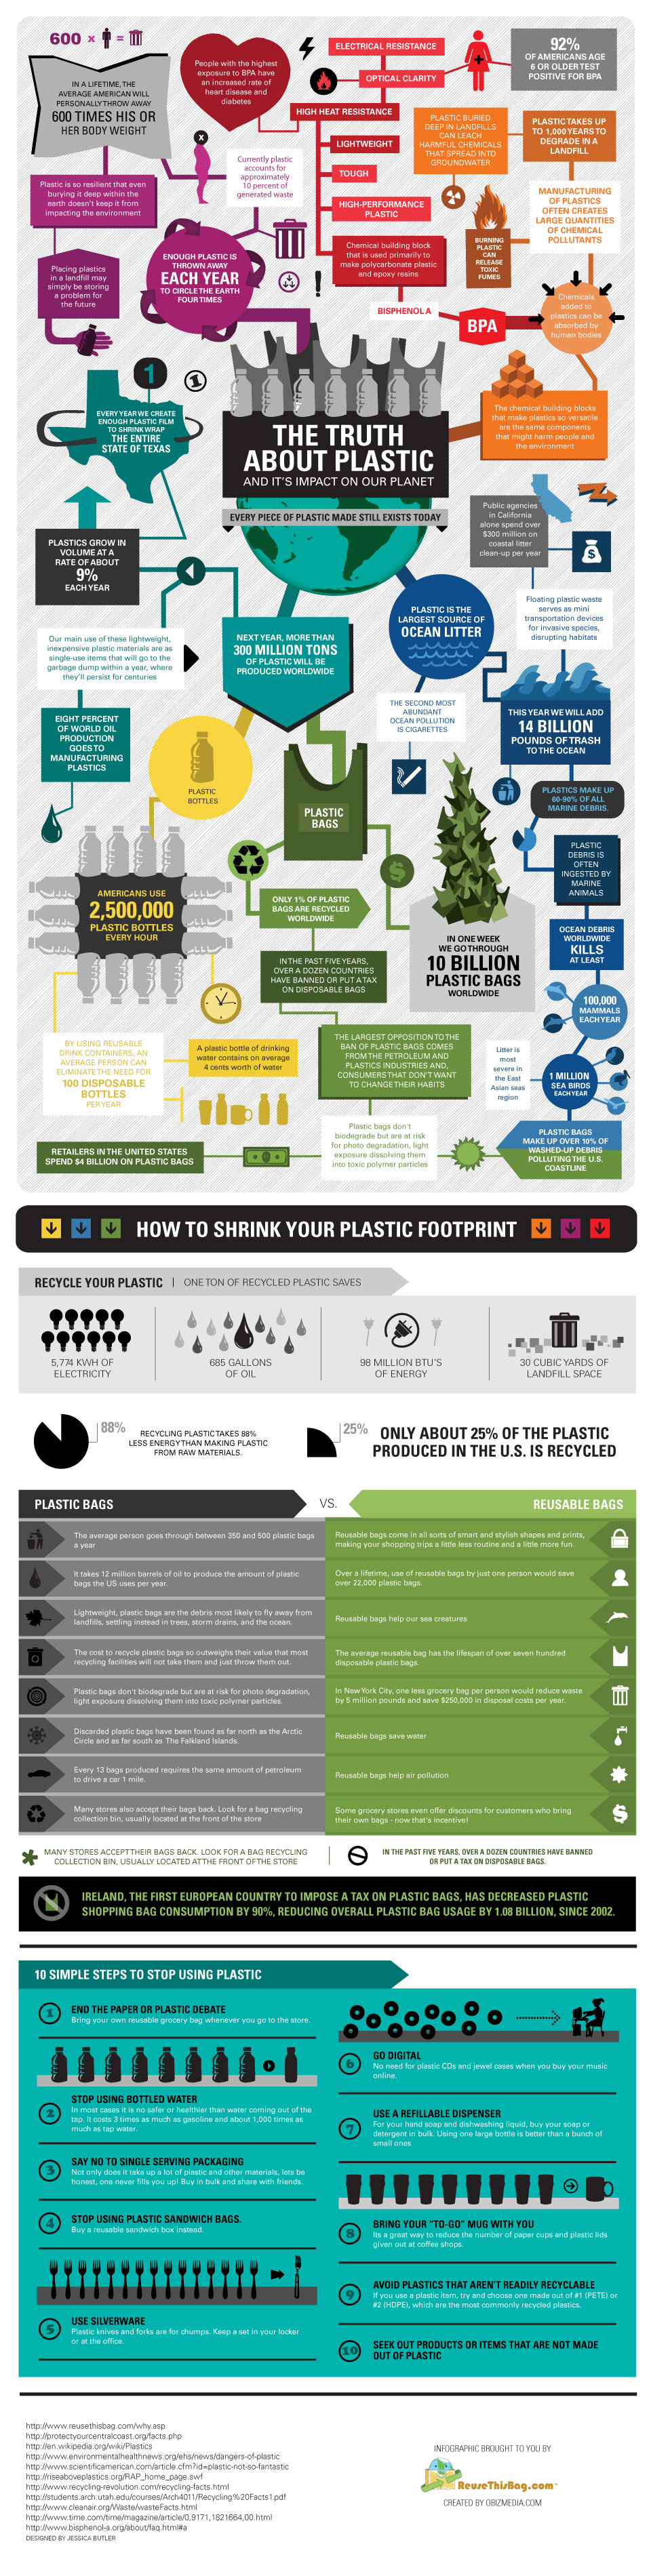 https://www.reusethisbag.com/reusable-bag-infographics/the-truth-about-plastic.php